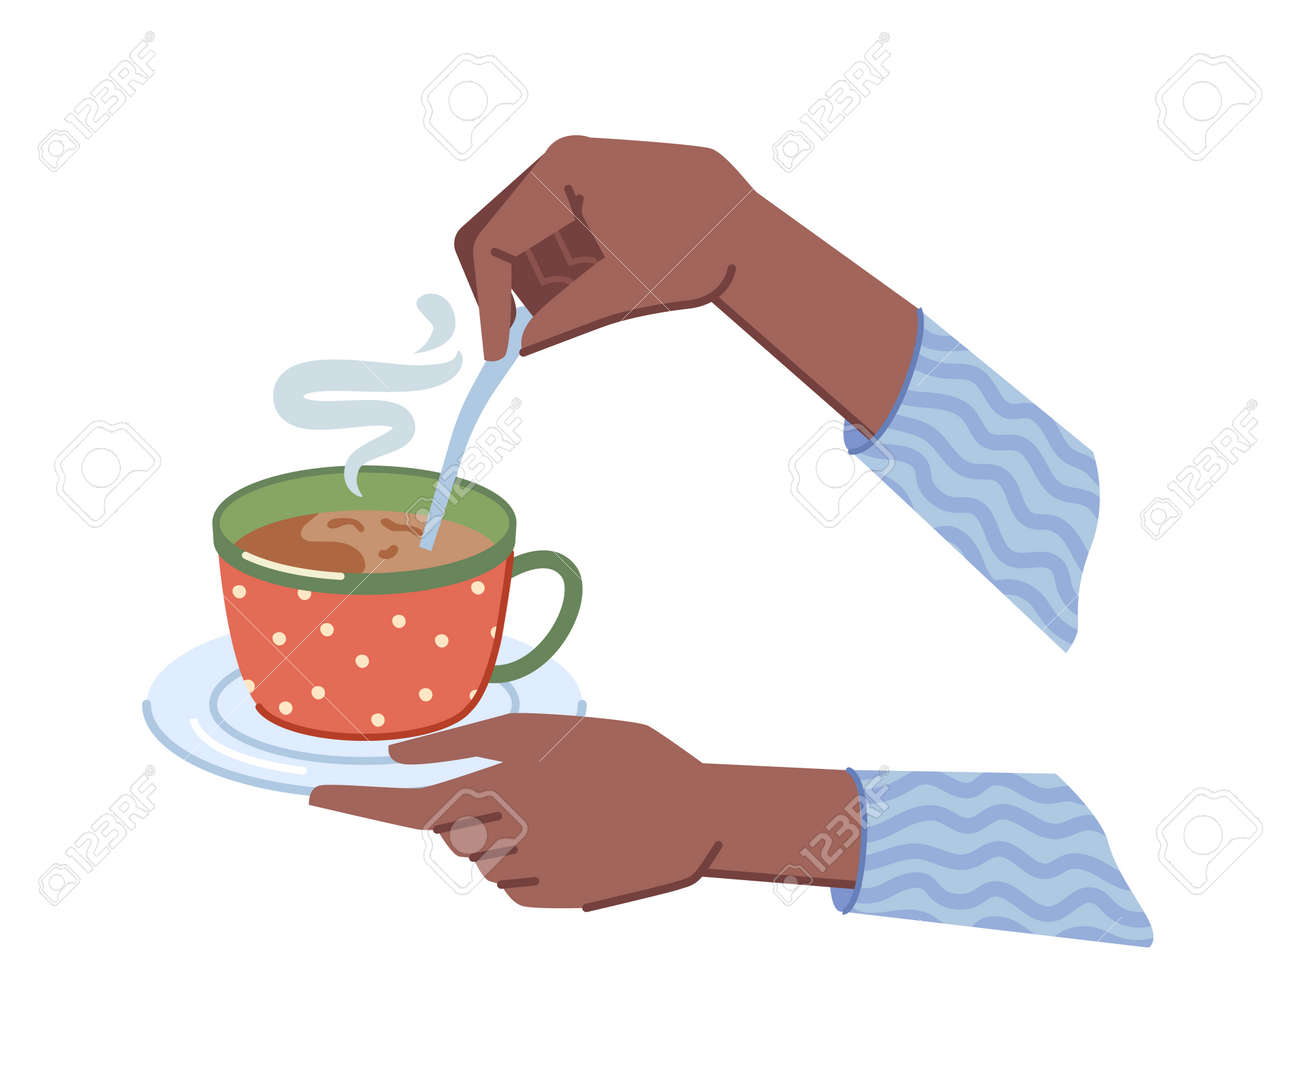 Coffee or hot chocolate drink poured in cup and served with saucer and spoon. Isolated hands holding mug of tea, cappuccino or latte with steam. Cafe or restaurant. Vector in flat cartoon style - 171589768